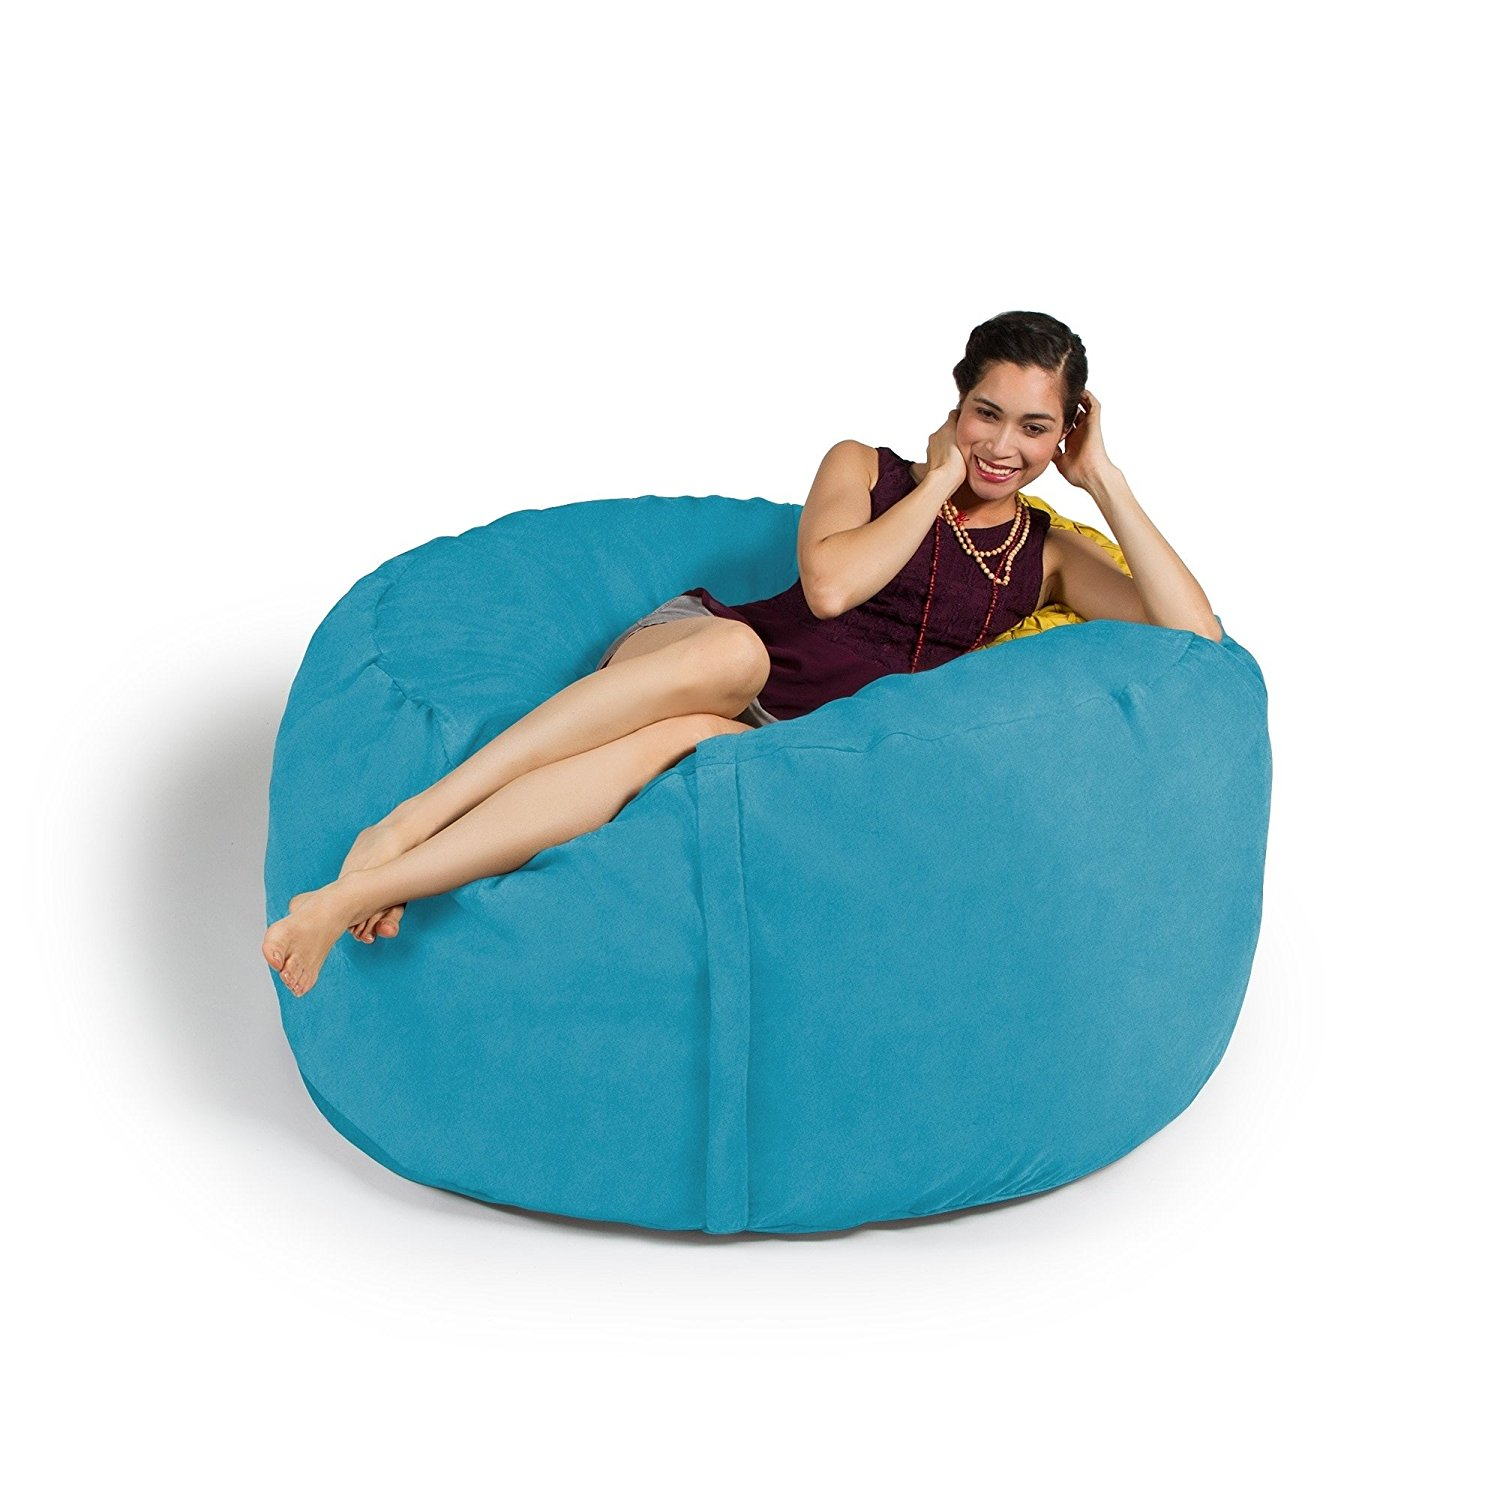 jaxx bean bag chairs poang chair instructions cheap find deals on line at alibaba com get quotations bags 5 ft giant teal